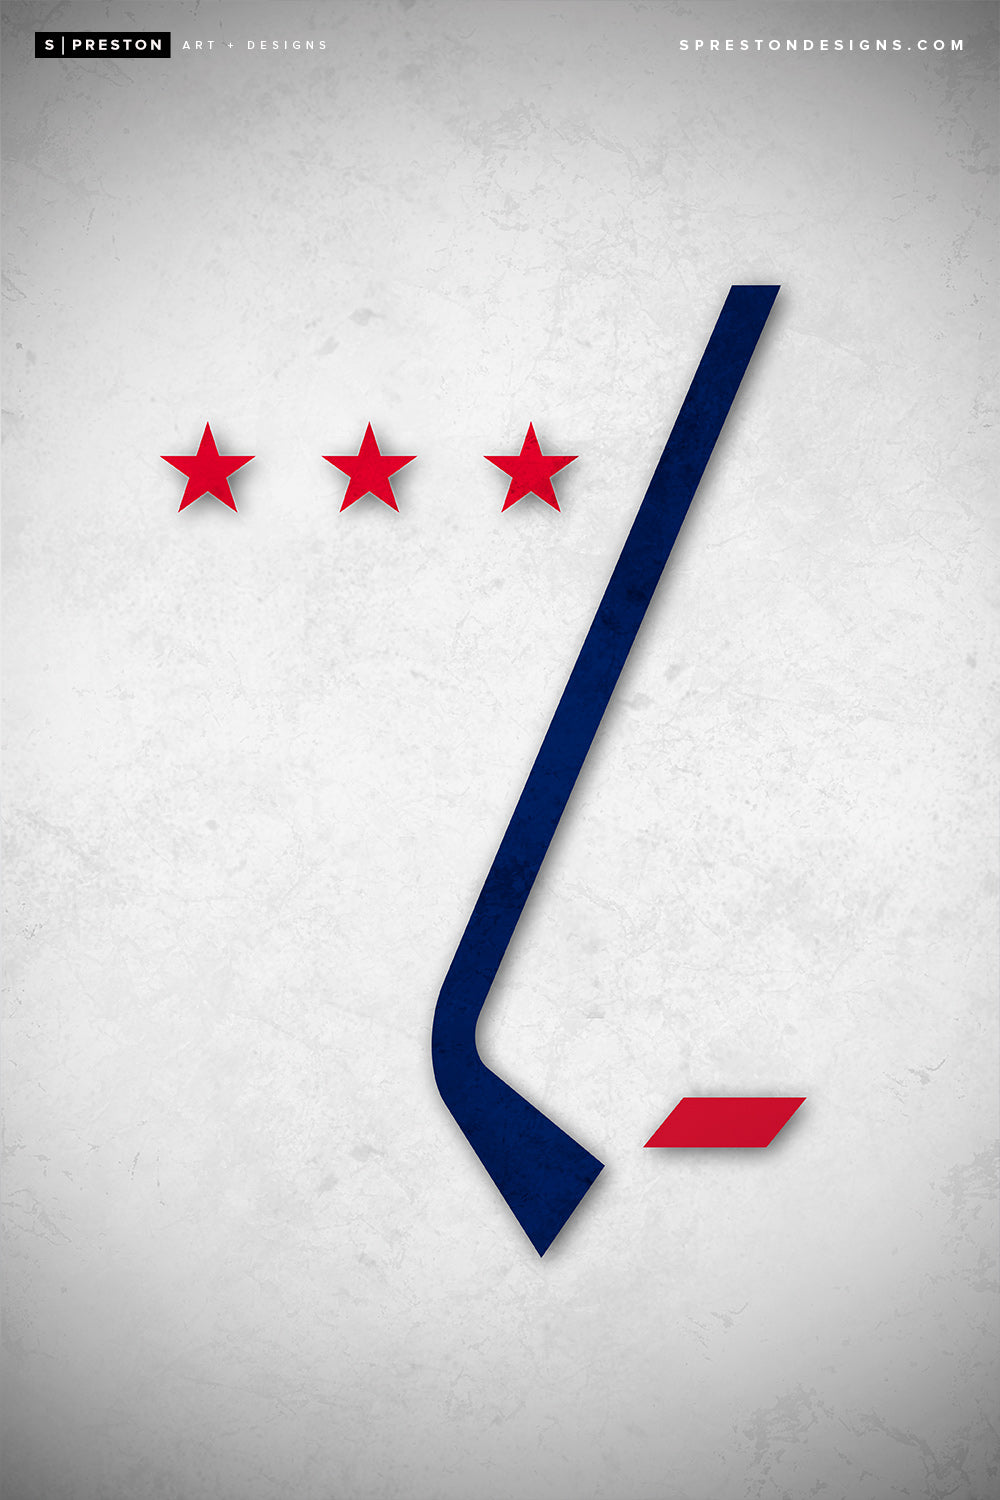 Minimalist Logo - Washington Capitals Poster Print Washington Capitals - S Preston